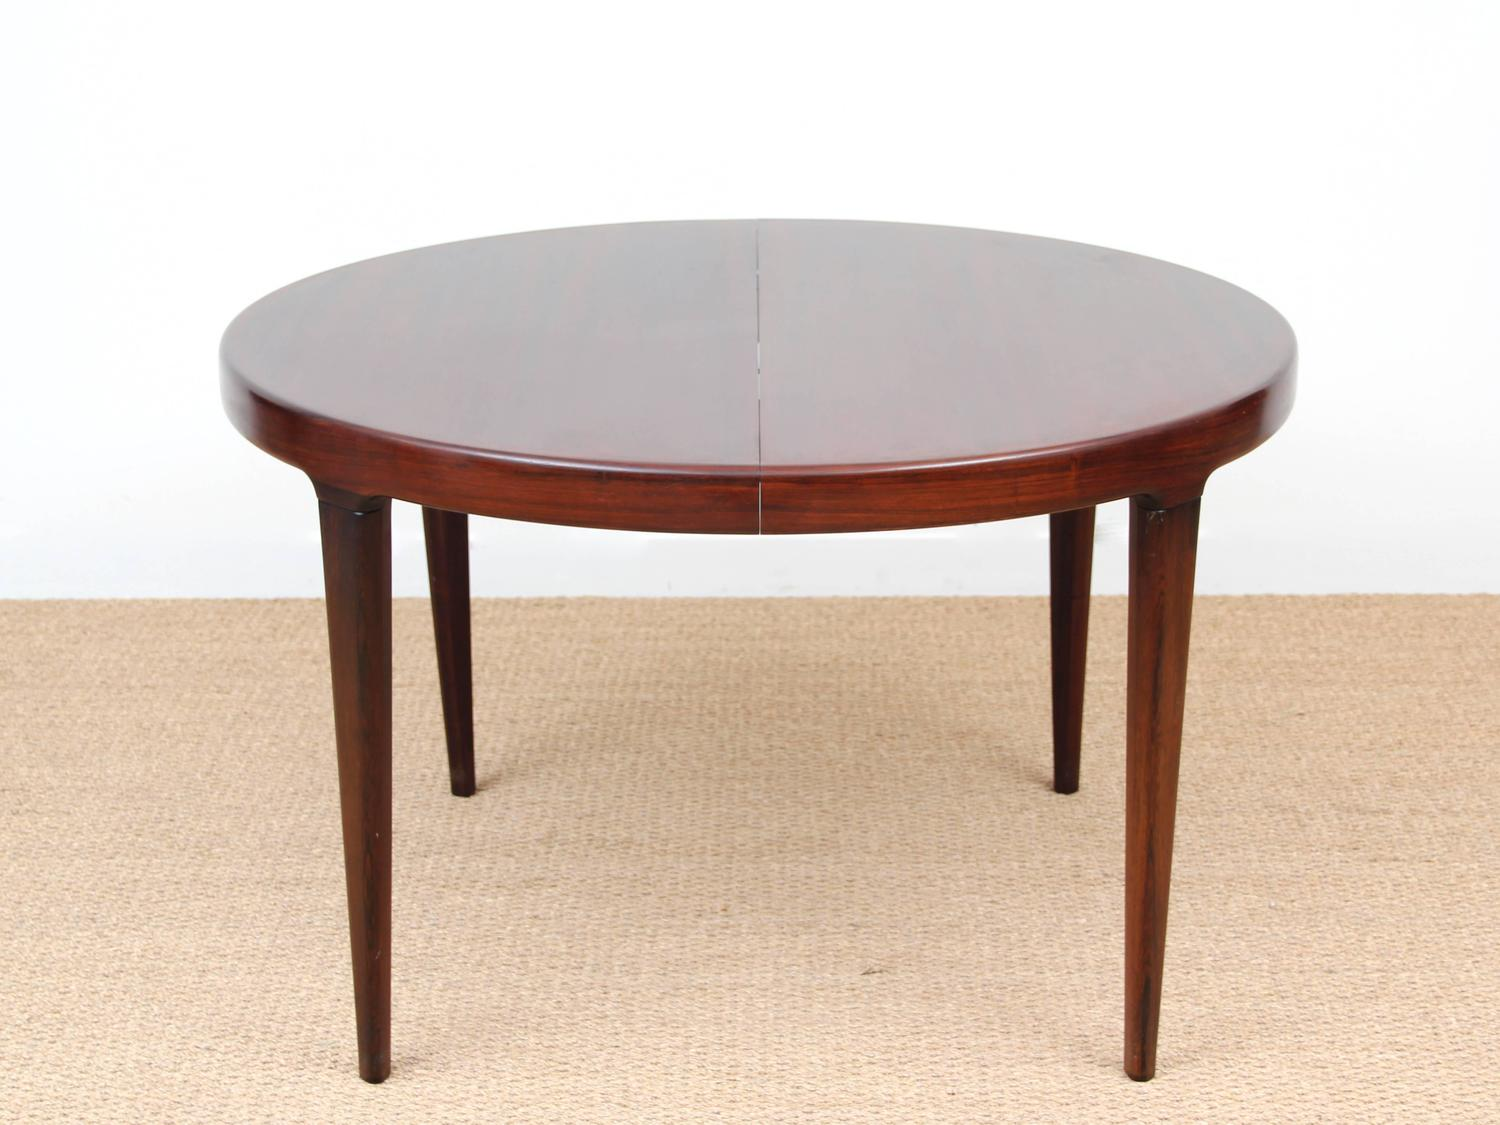 Scandinavian Round Dining Table In Rio Rosewood For Sale